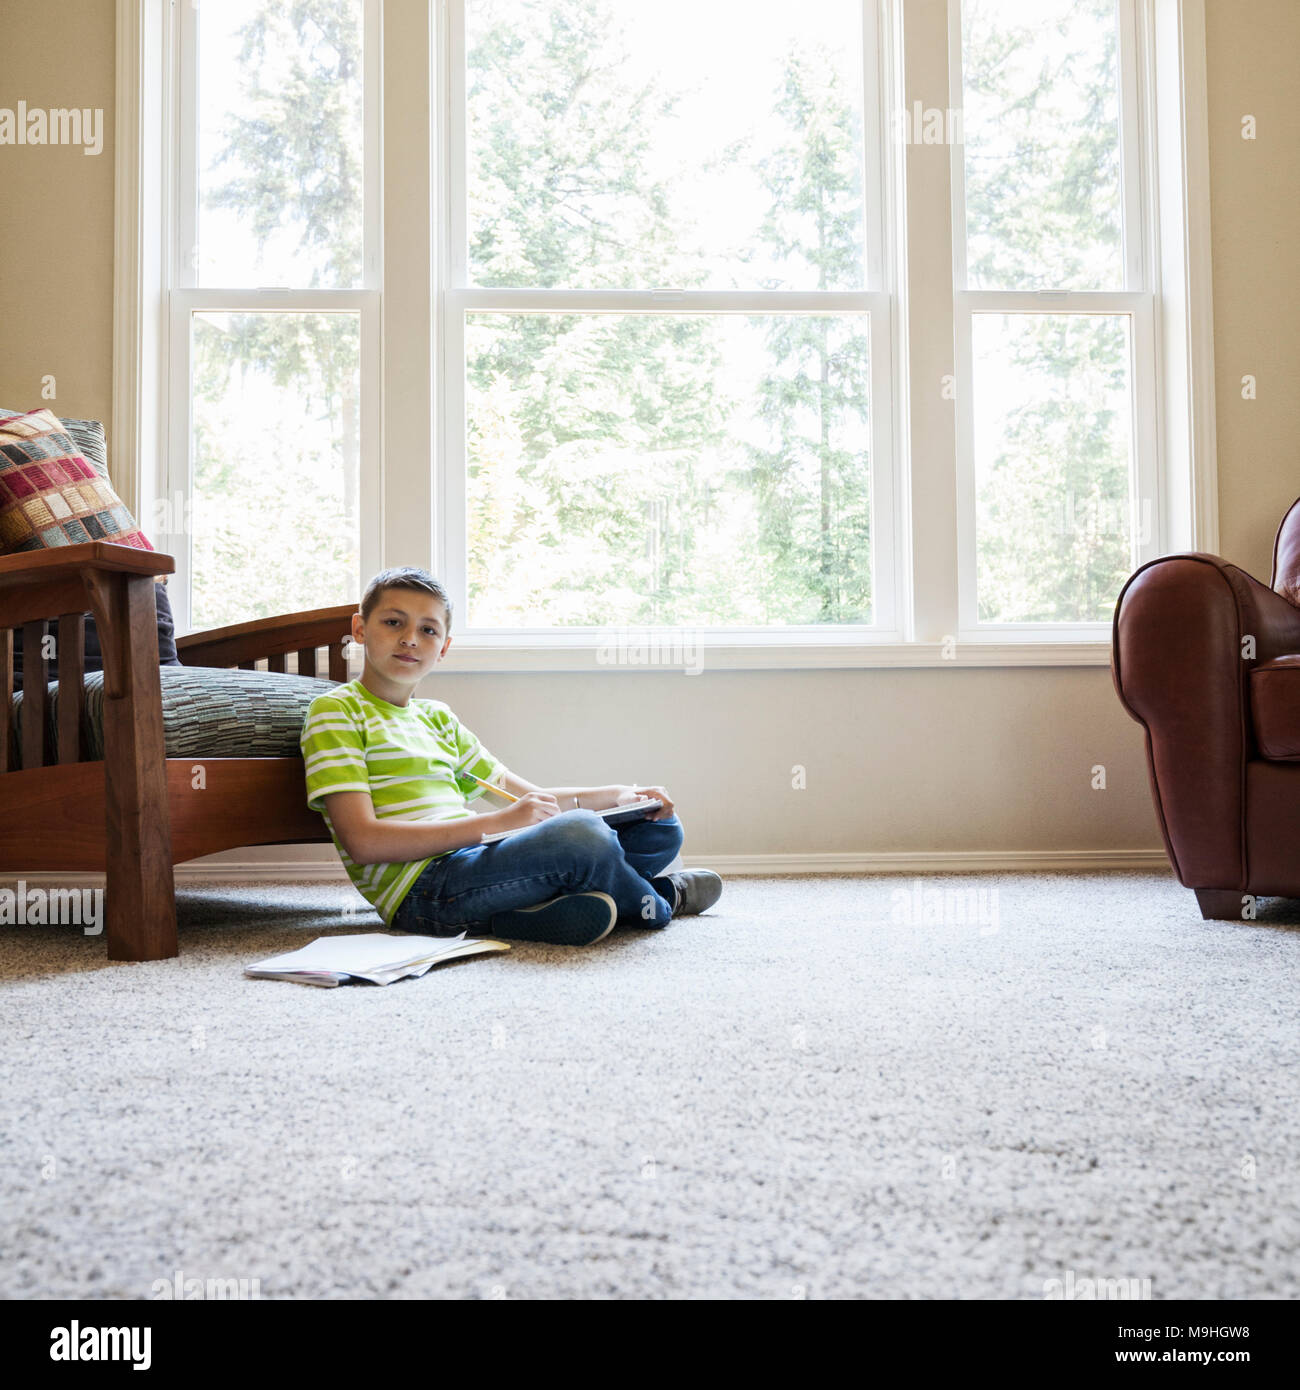 Young boy at home doing homework. - Stock Image